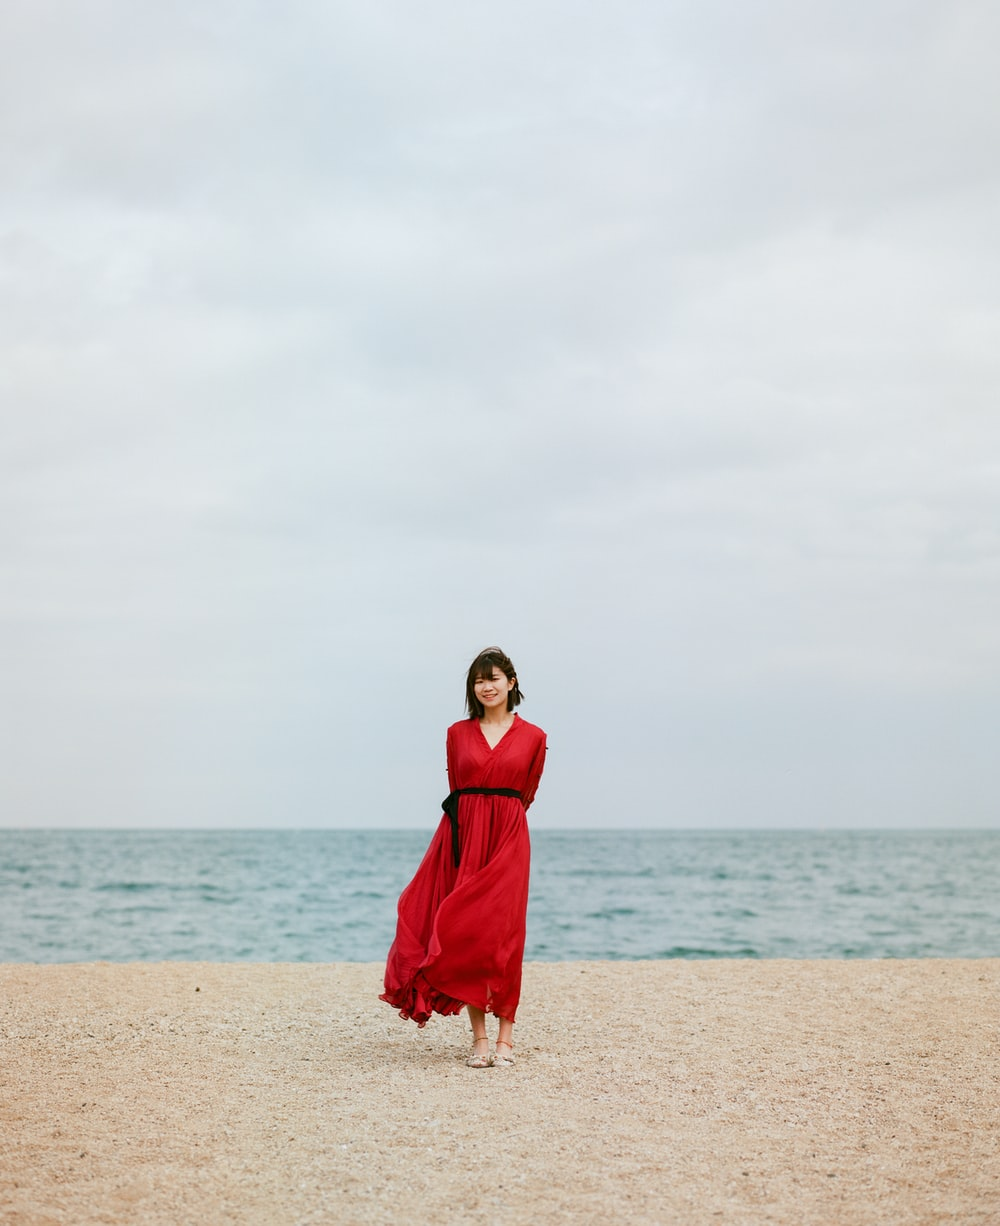 woman in red dress standing on beach during daytime